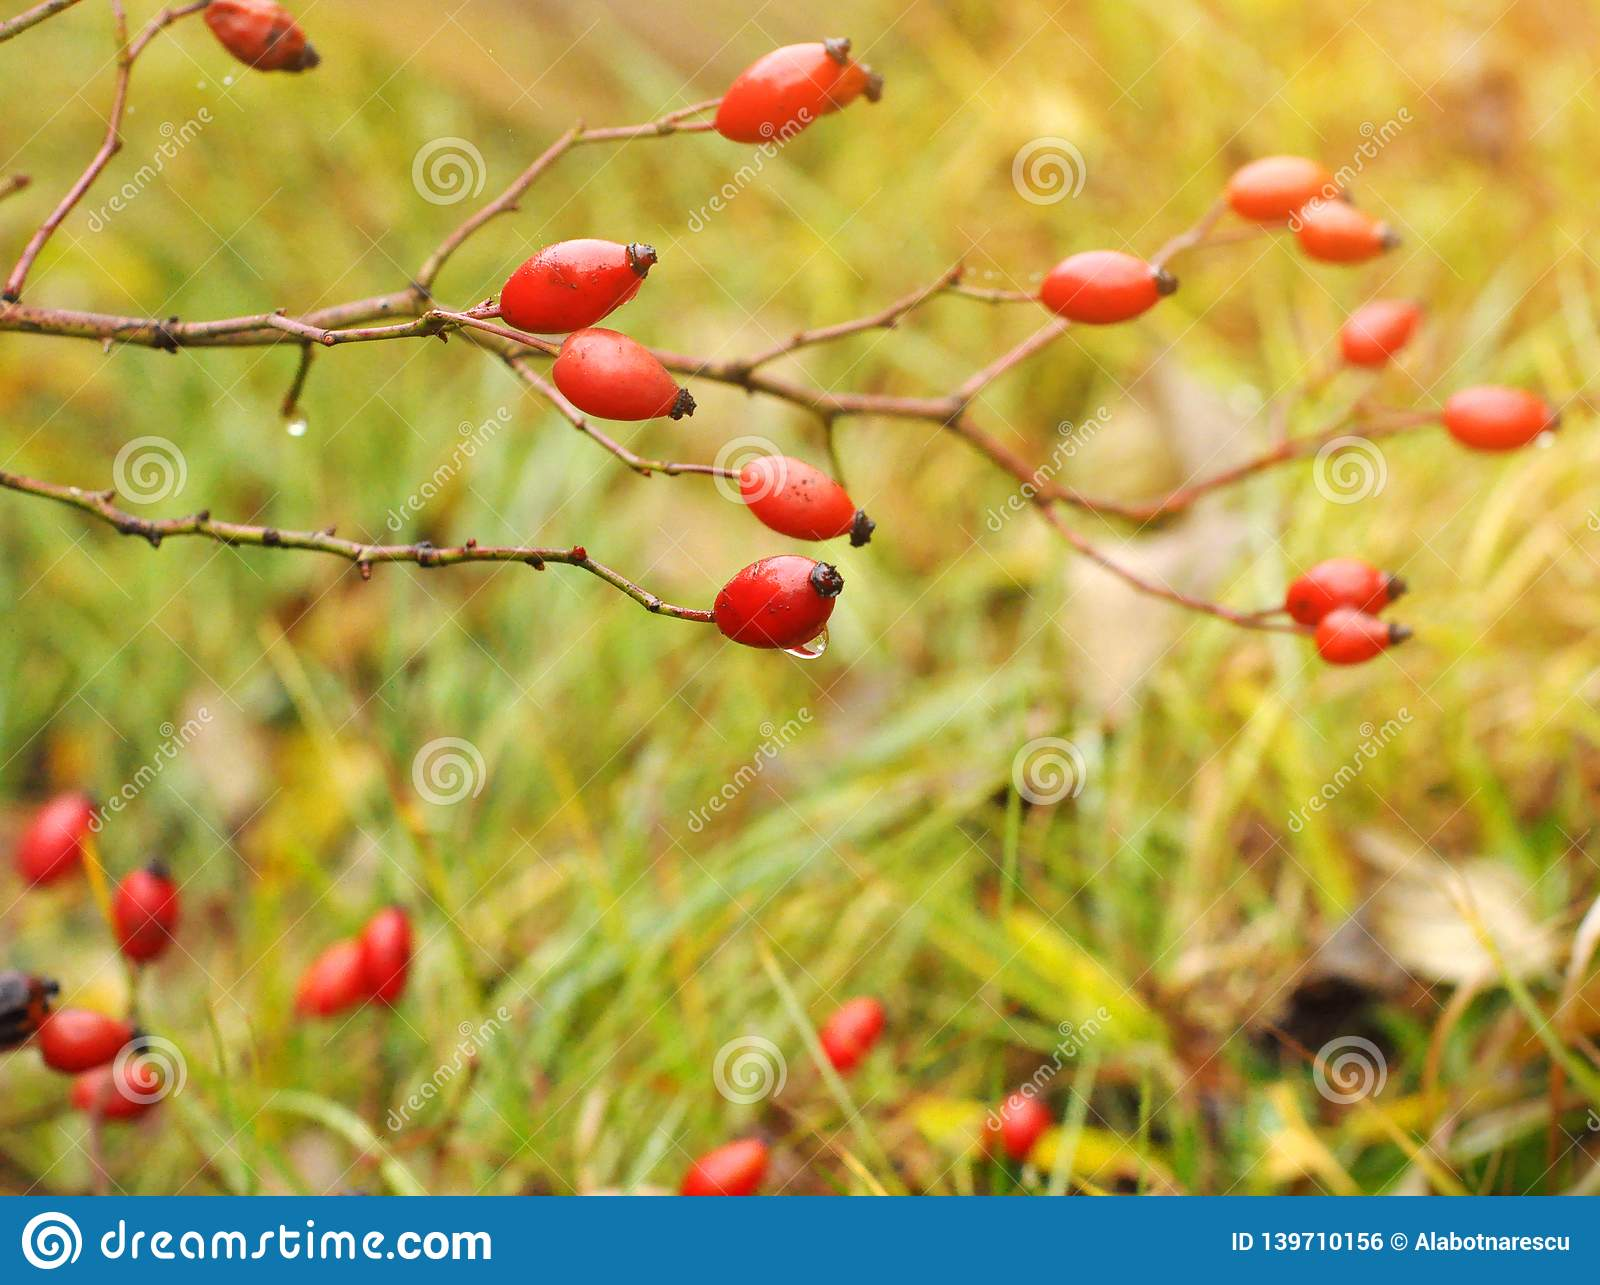 Close-up of dog-rose berries. Dog rose fruits Rosa canina on the blurred green grass. Wild rosehips in nature. Sunrise over Red